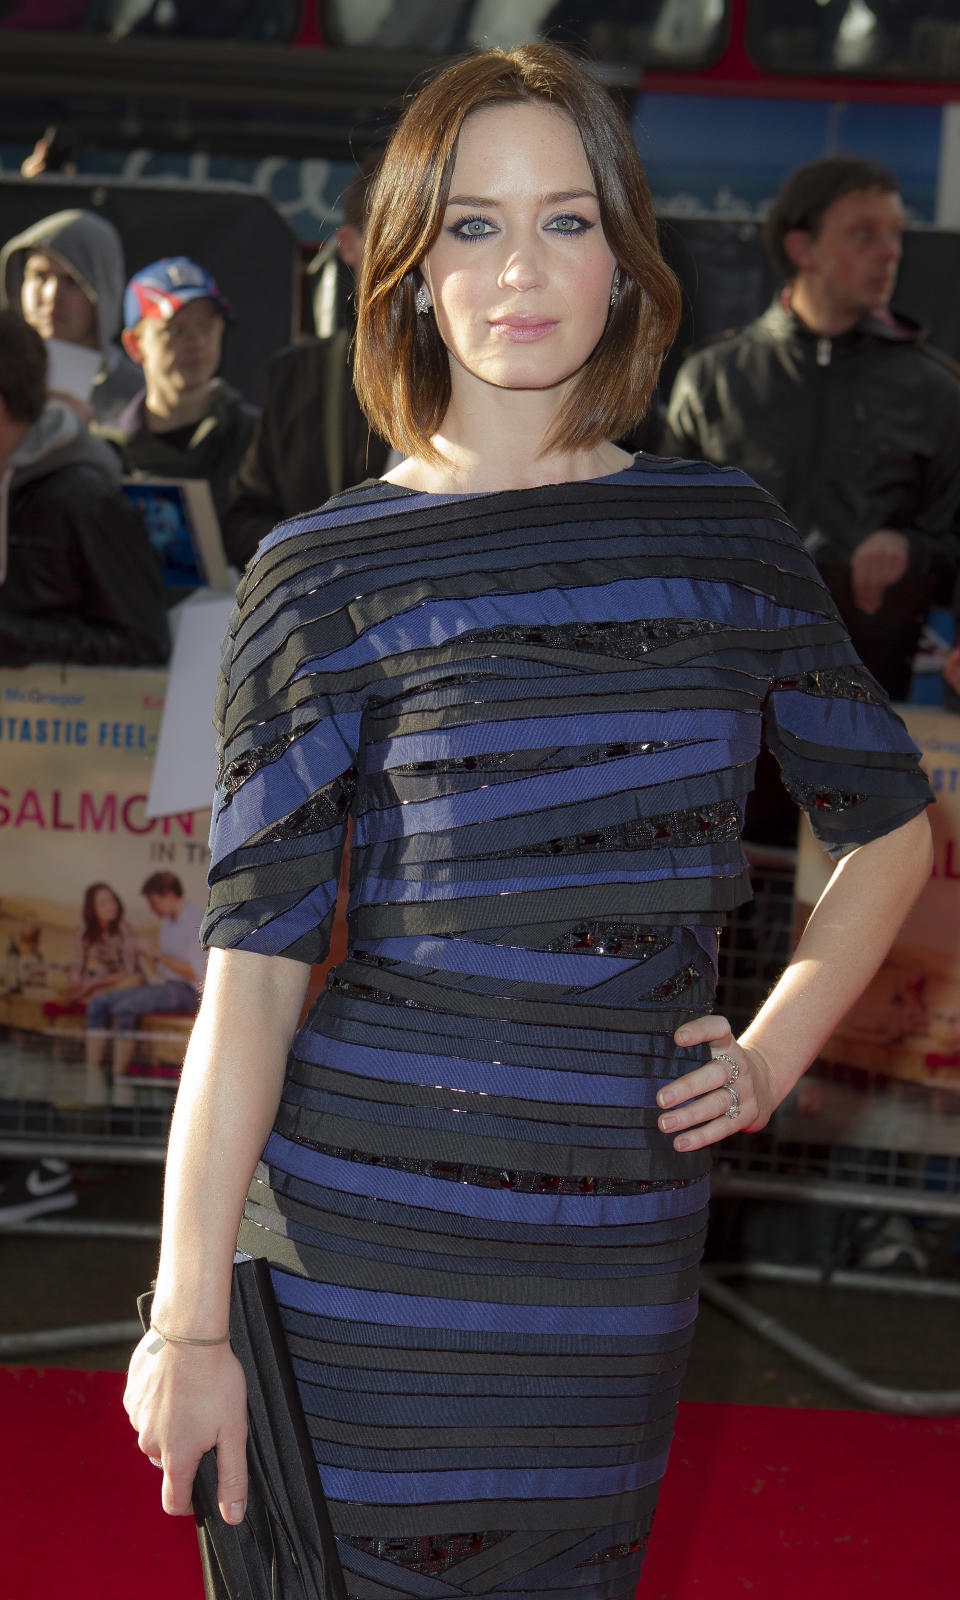 British actress Emily Blunt arrives at the 'Salmon Fishing In The Yemen' European premiere at a west London cinema, Tuesday, April 10, 2012. (AP Photo/Joel Ryan)